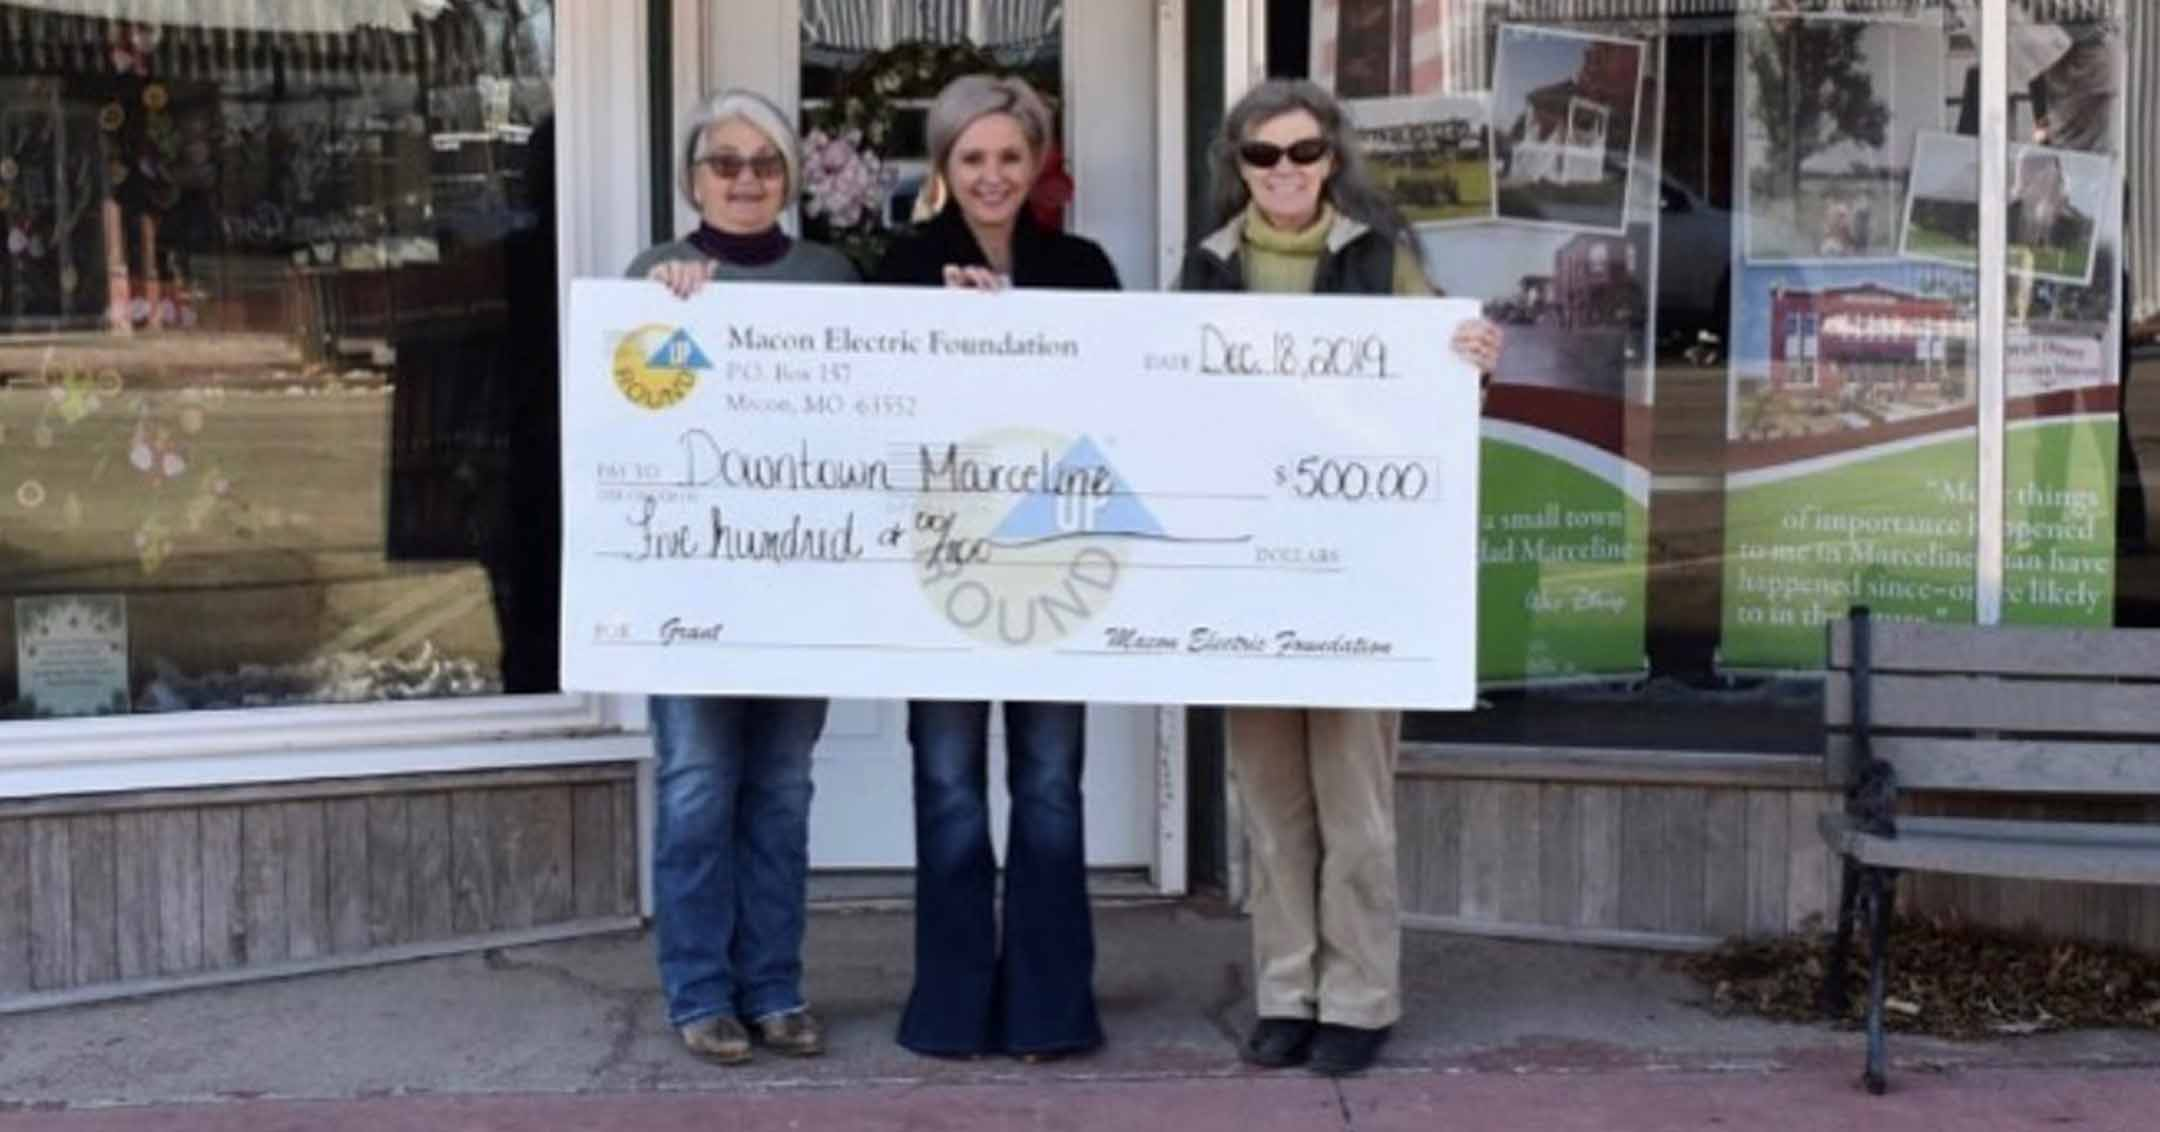 2019 Macon Electric Foundation Grant Recipients   DowntownMarceline.org